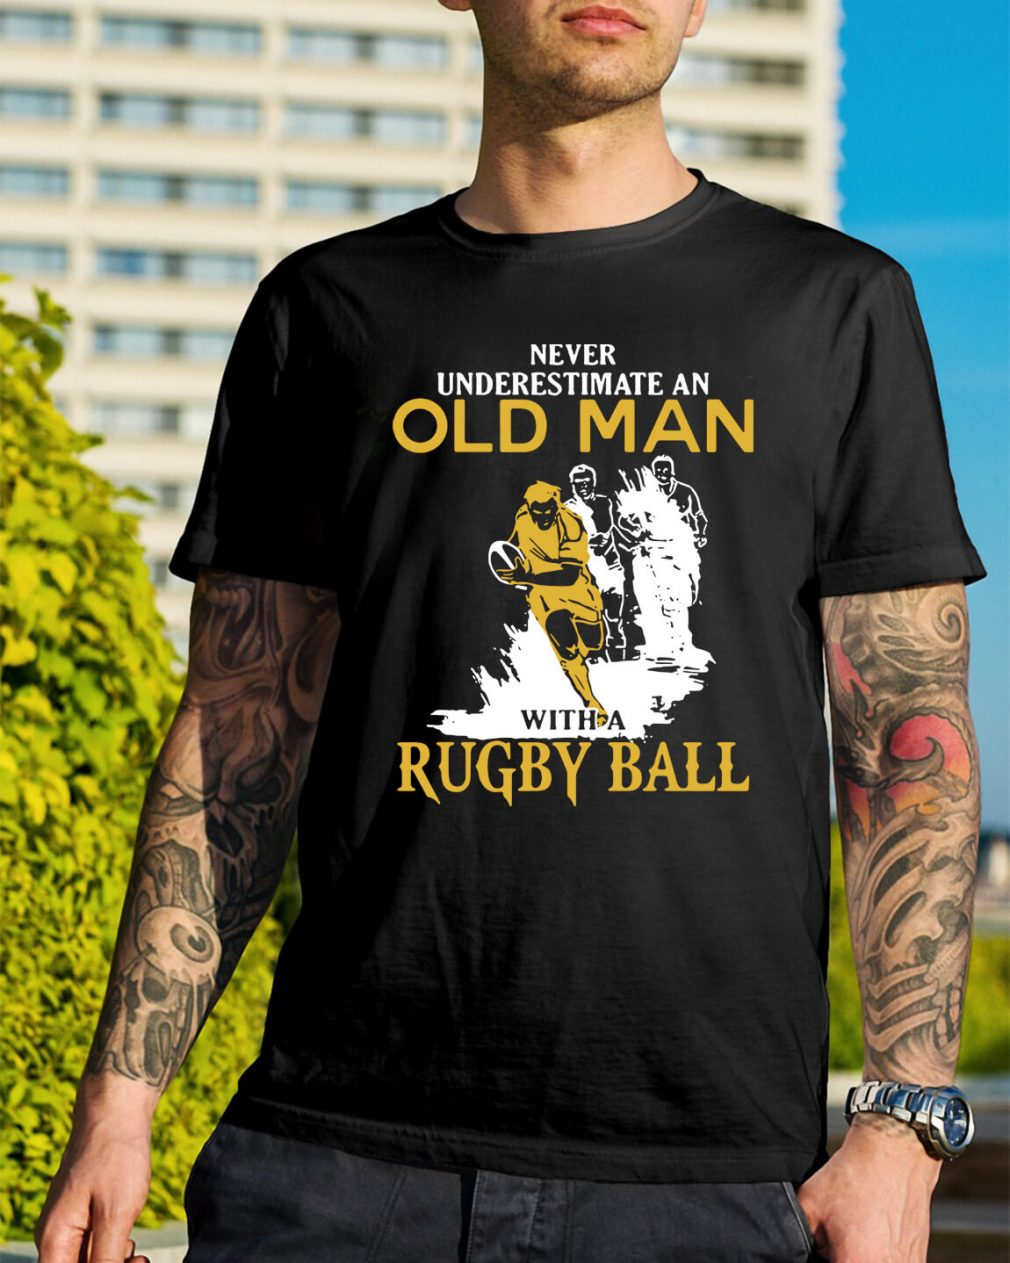 Never underestimate an old man with a Rugby ball shirt